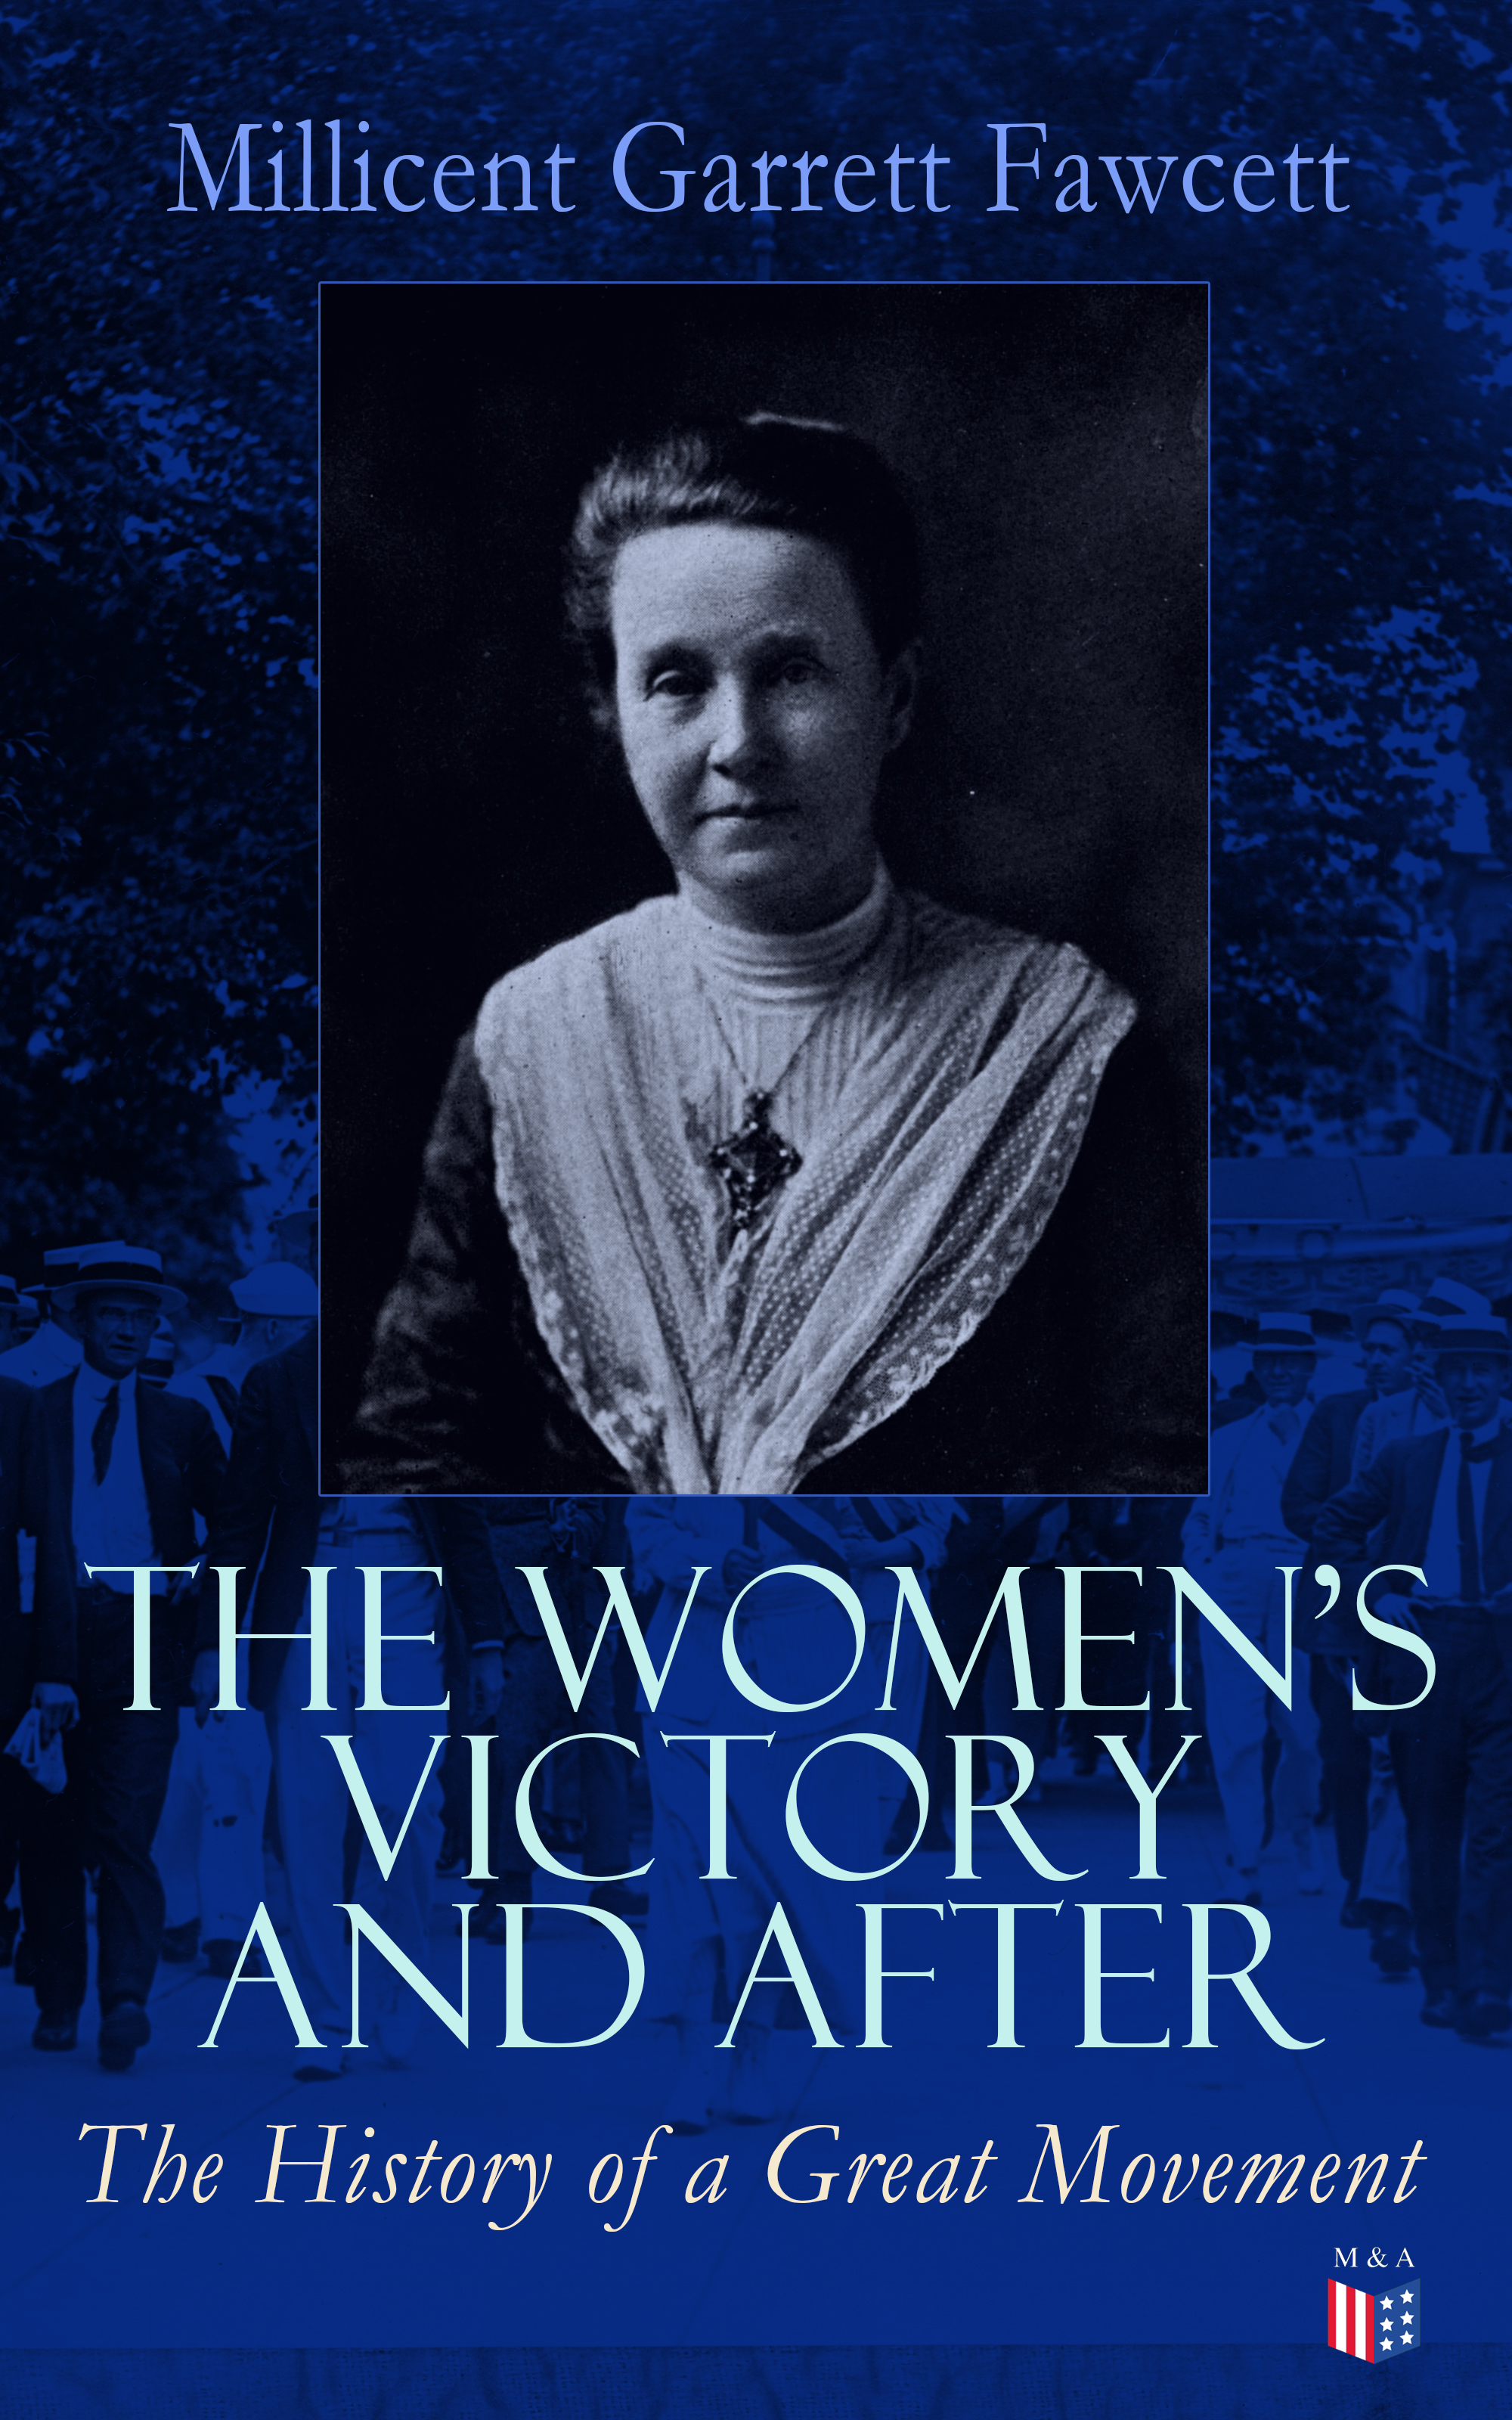 Millicent Garrett Fawcett The Women's Victory and After